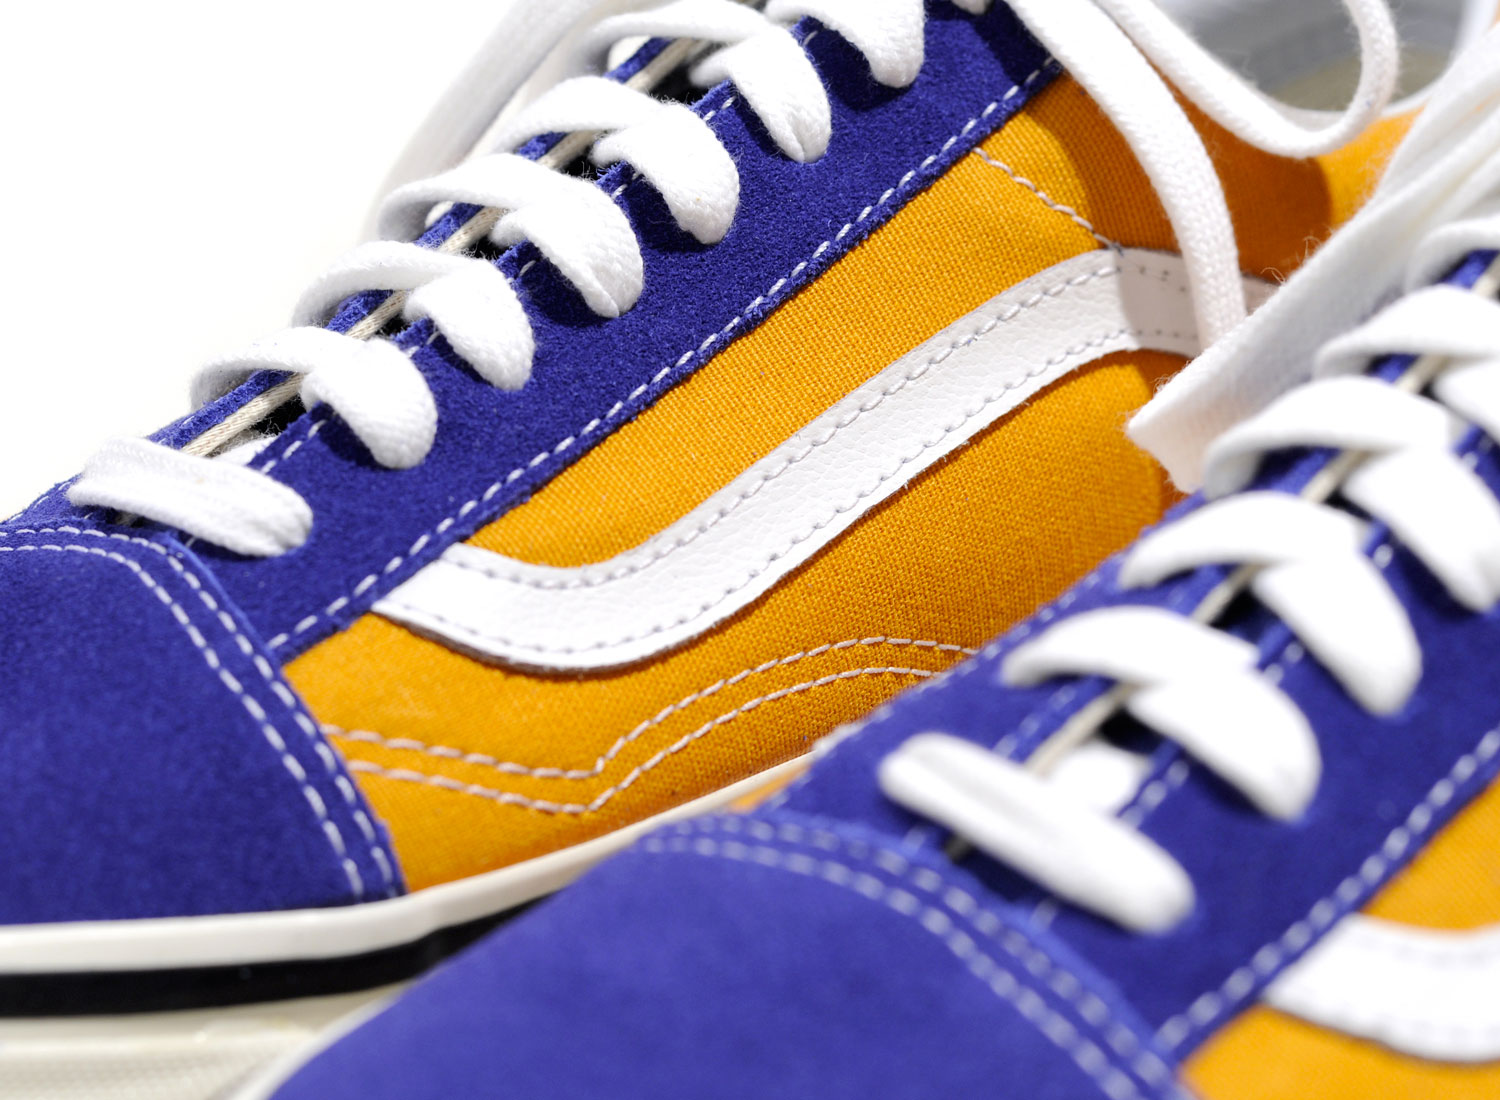 Vans Old Skool 36 DX Anaheim Factory OG Blue